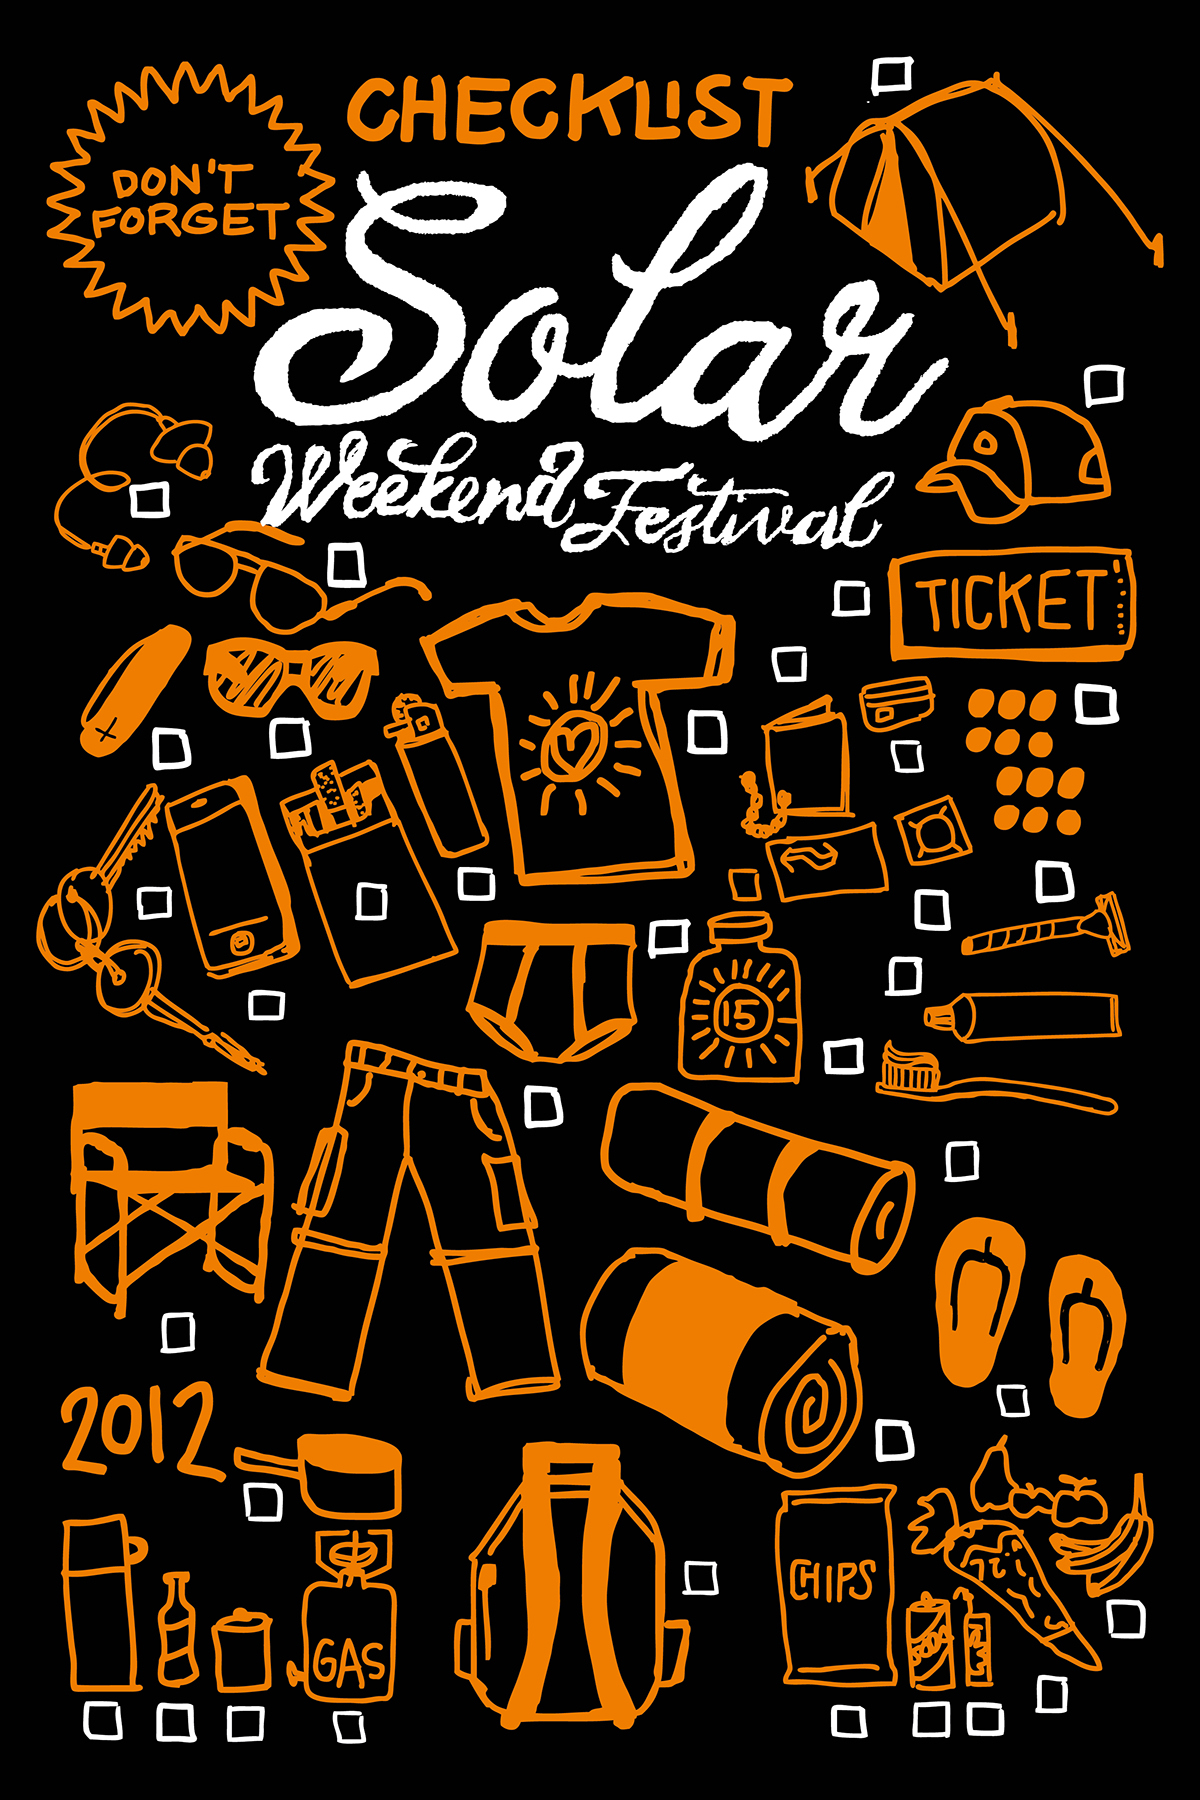 Solar Weekend Festival T-shirt